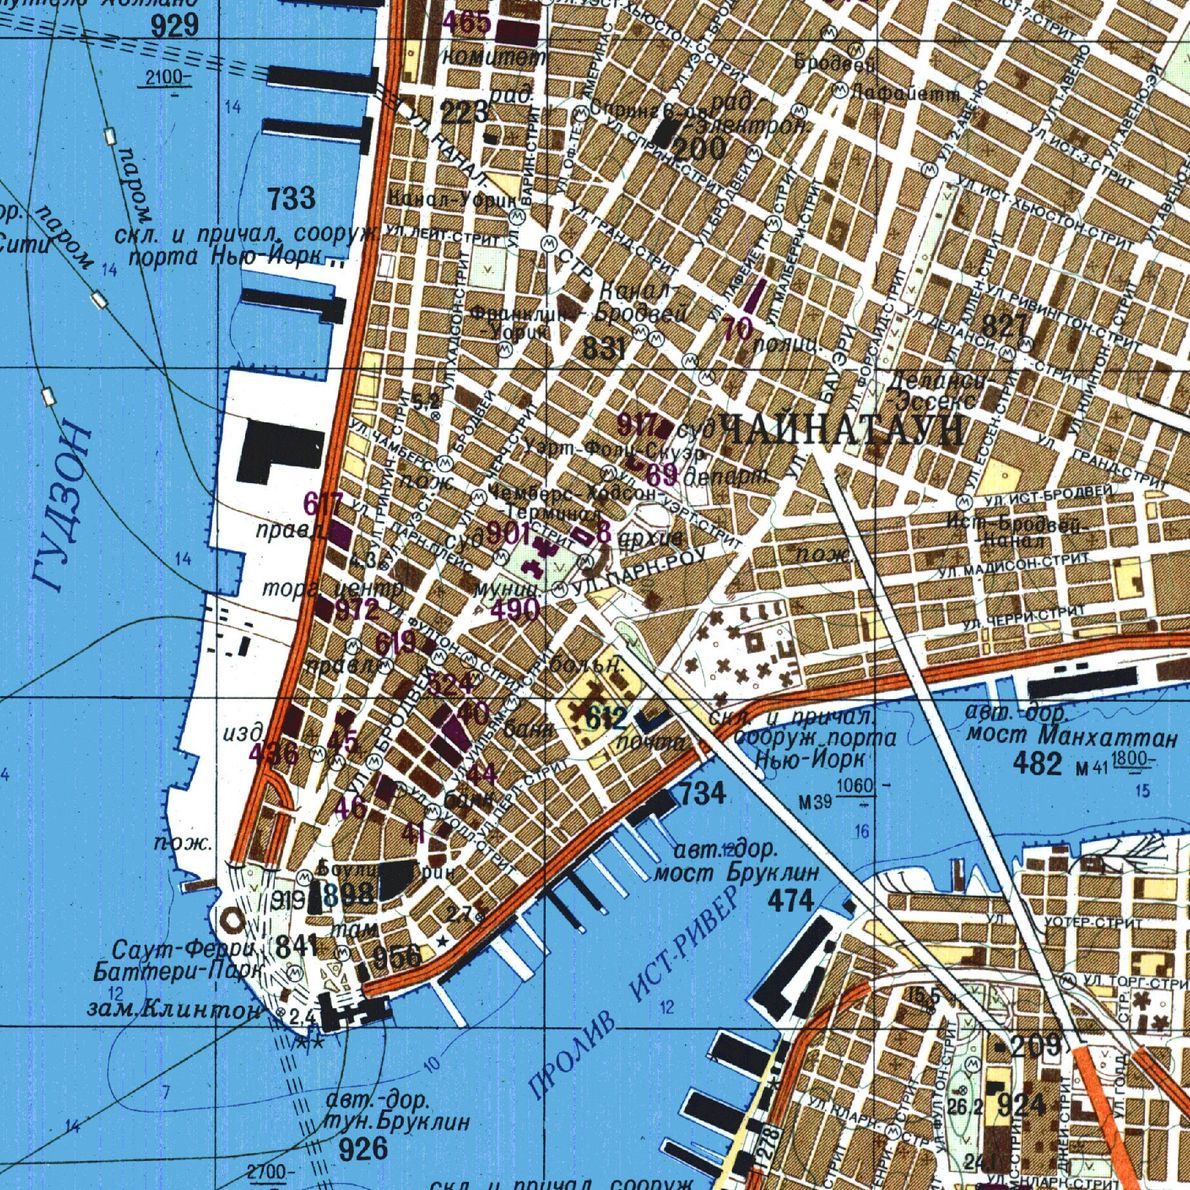 This Soviet map of lower Manhattan, printed in 1982, details ferry routes, subway stations, and bridges.